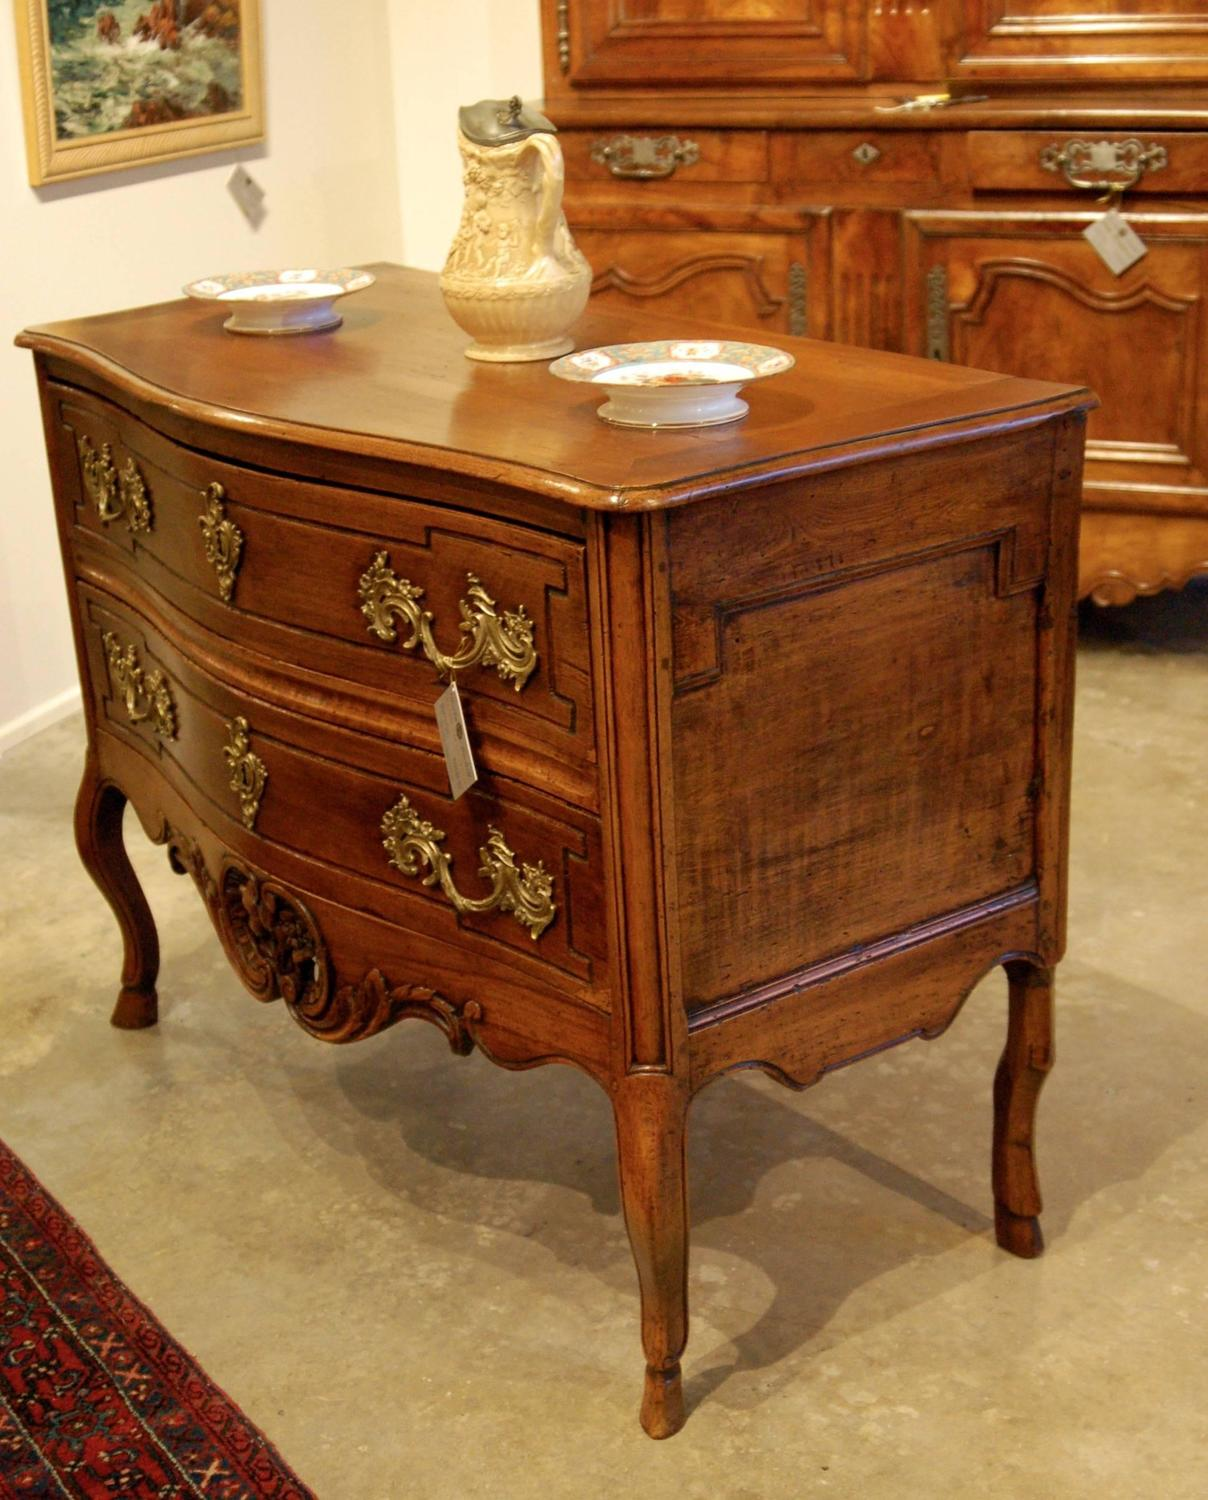 louis xv period commode sur pieds for sale at 1stdibs. Black Bedroom Furniture Sets. Home Design Ideas